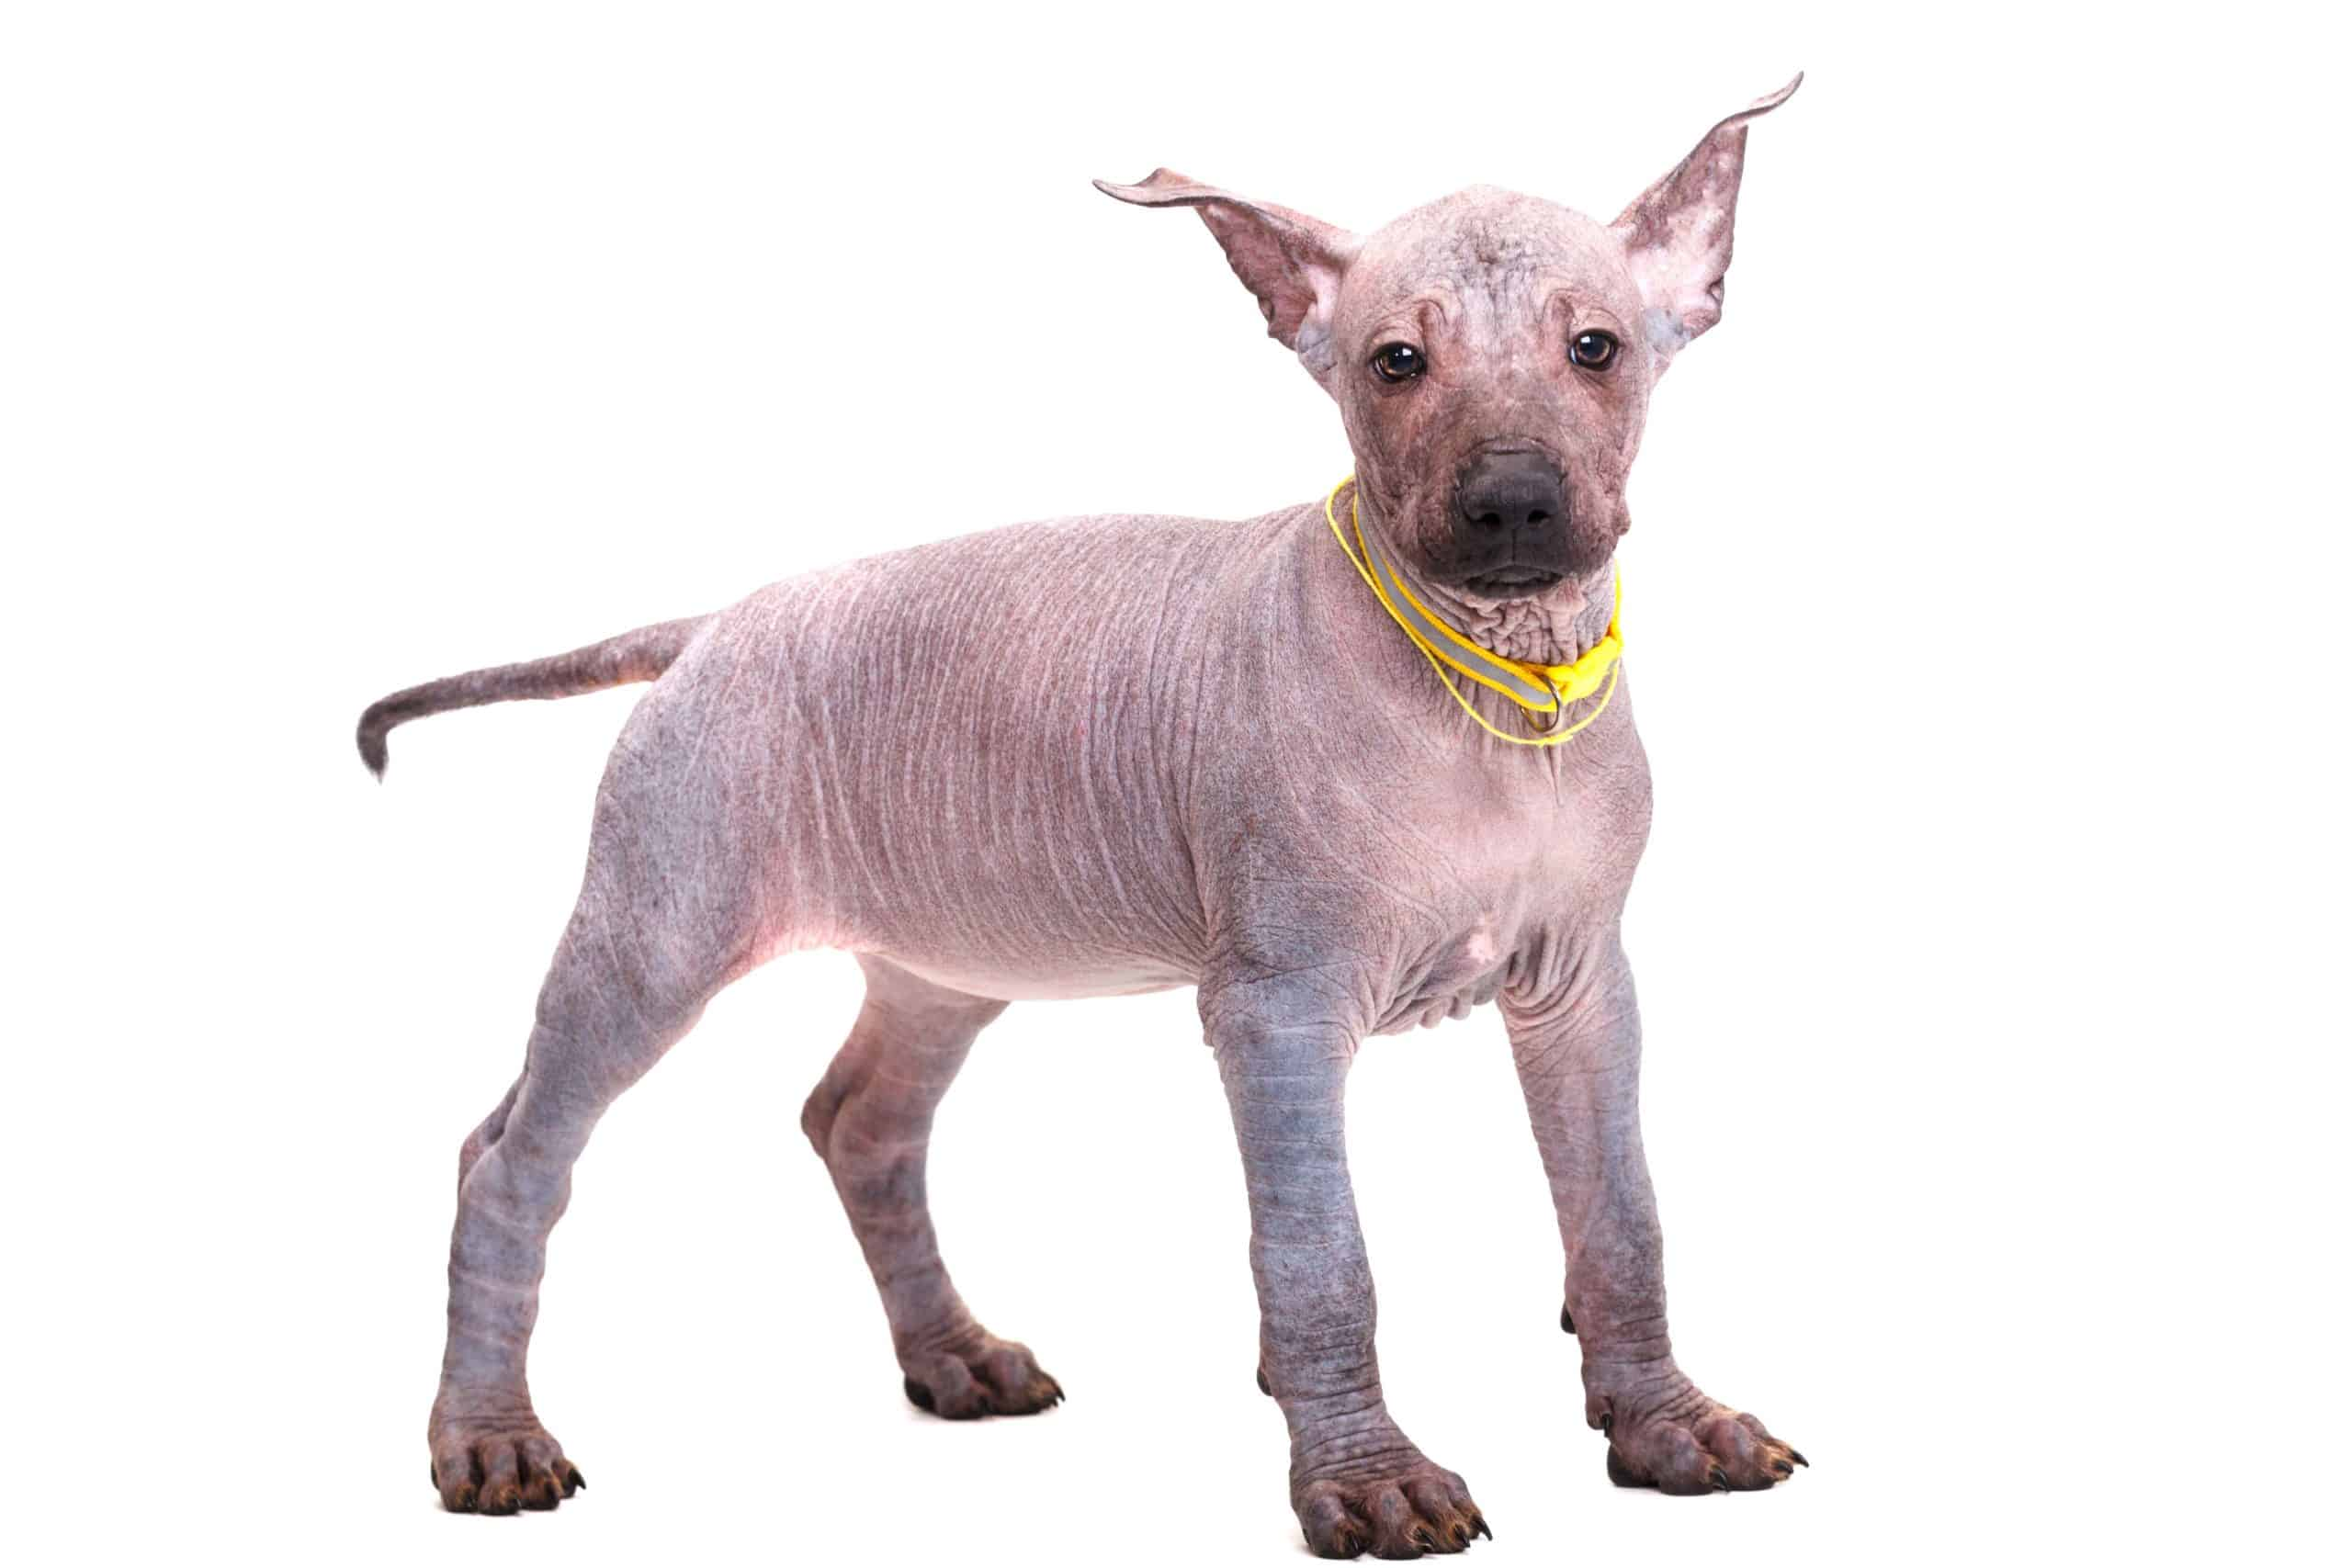 Xoloitzcuintili on a white background. Because the Xoloitzcuintili is an intelligent dog, training may be arduous as they may choose not to cooperate.